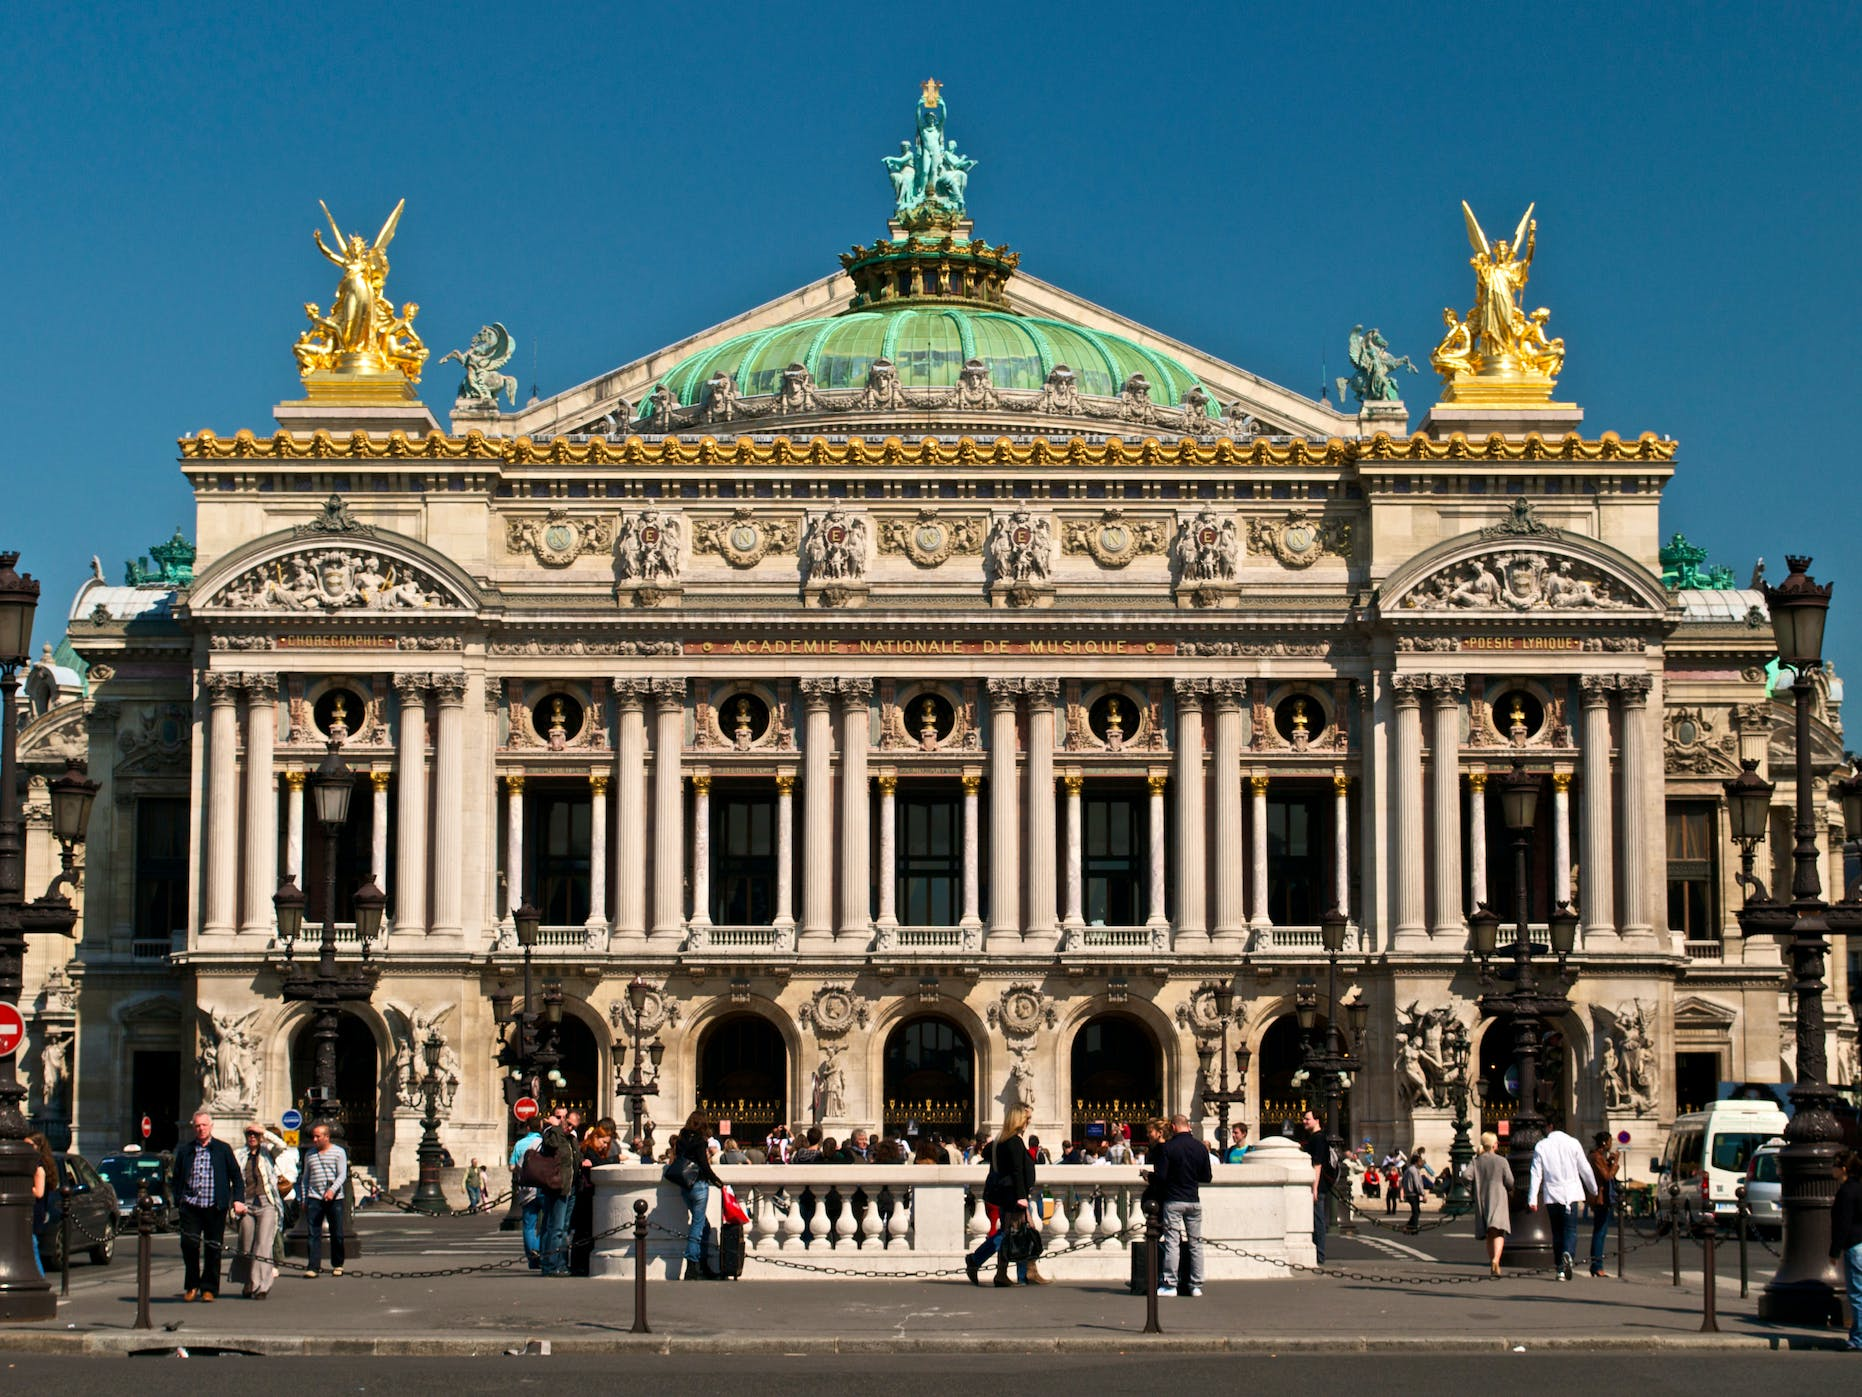 city invented, haussmann and the making of modern paris: walking tour-3